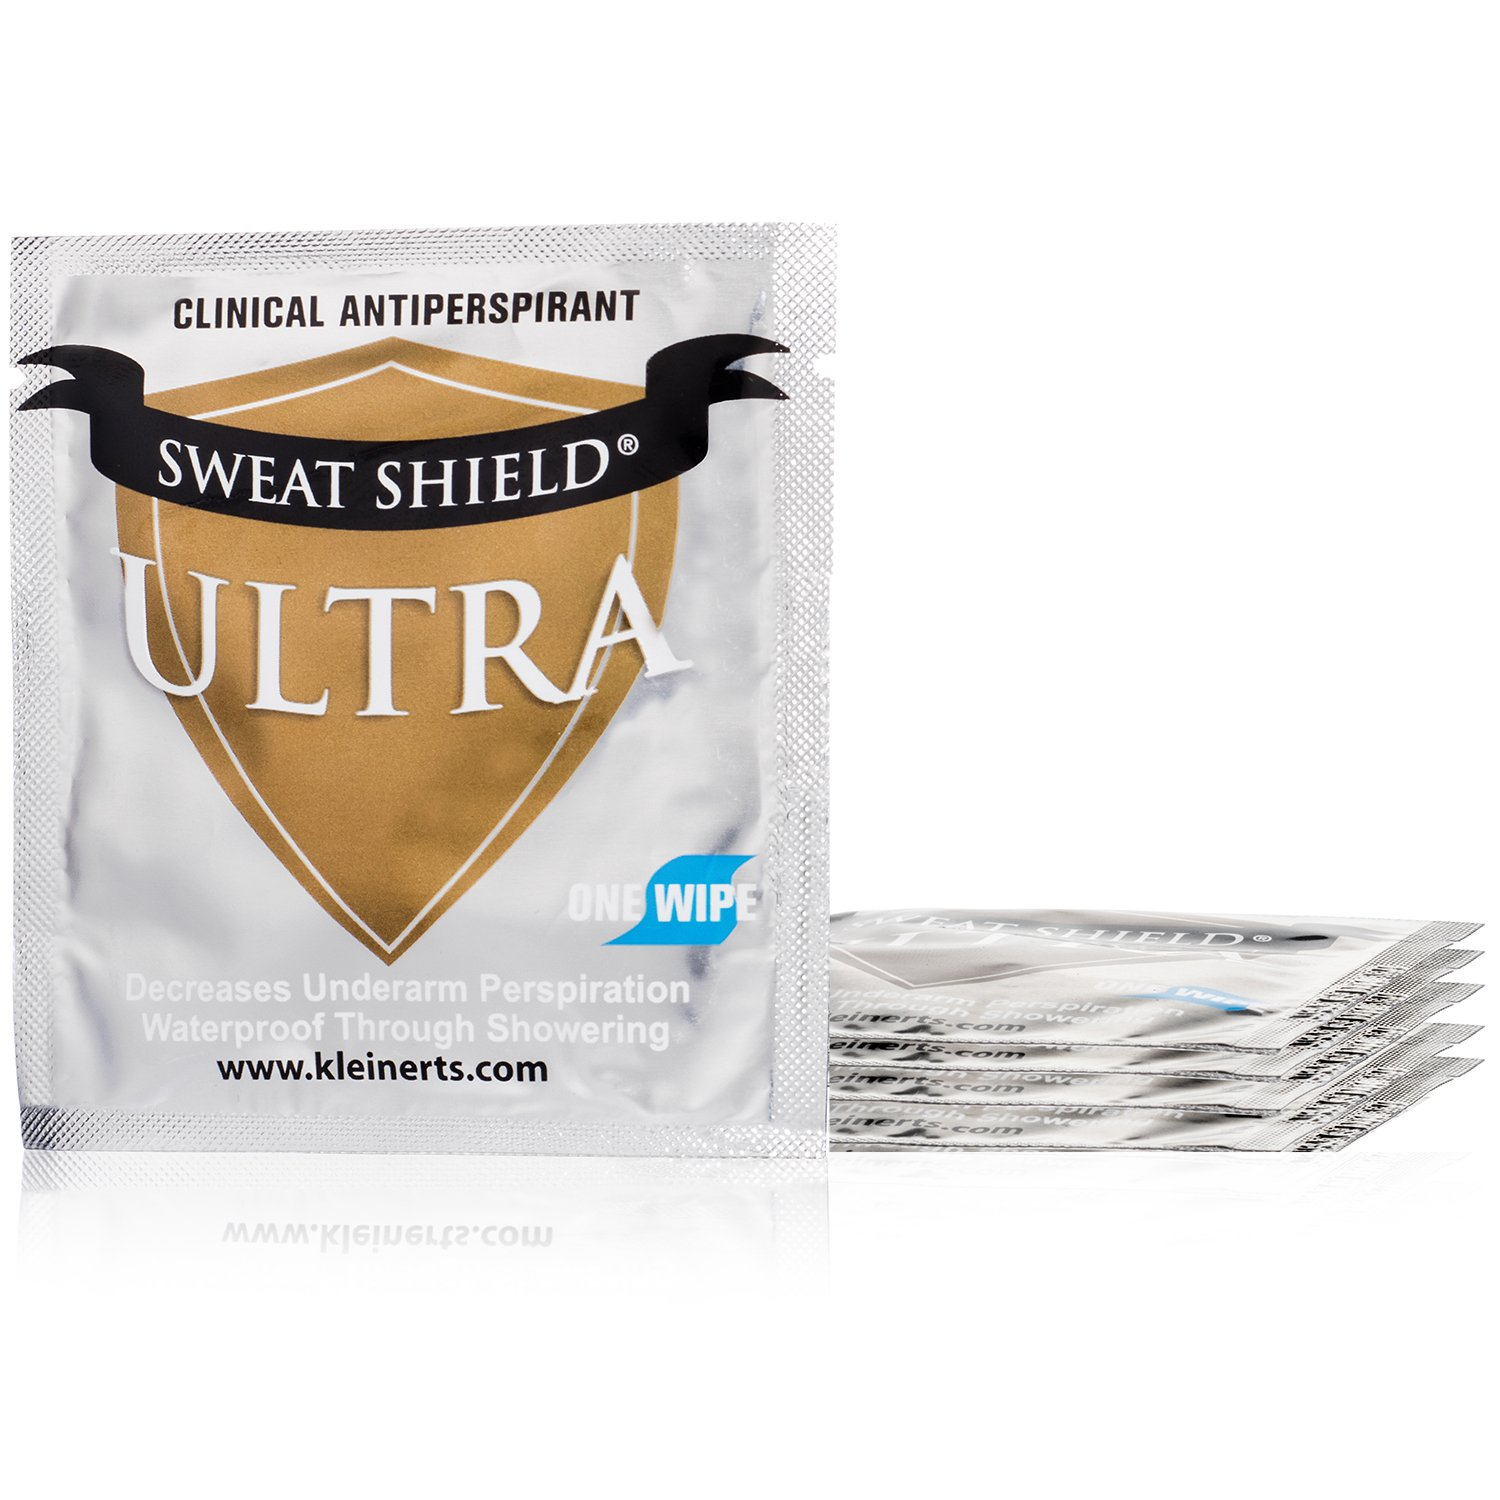 Kleinert's Maximum Strength 15% Ultra Sweat Shield Clinical Antiperspirant Wipes. Eliminate Sweat Everywhere Up To 7 Days - 5 Packets. No Irritation. Dermatologist Recommended. Ships Free by Kleinert's (Image #2)